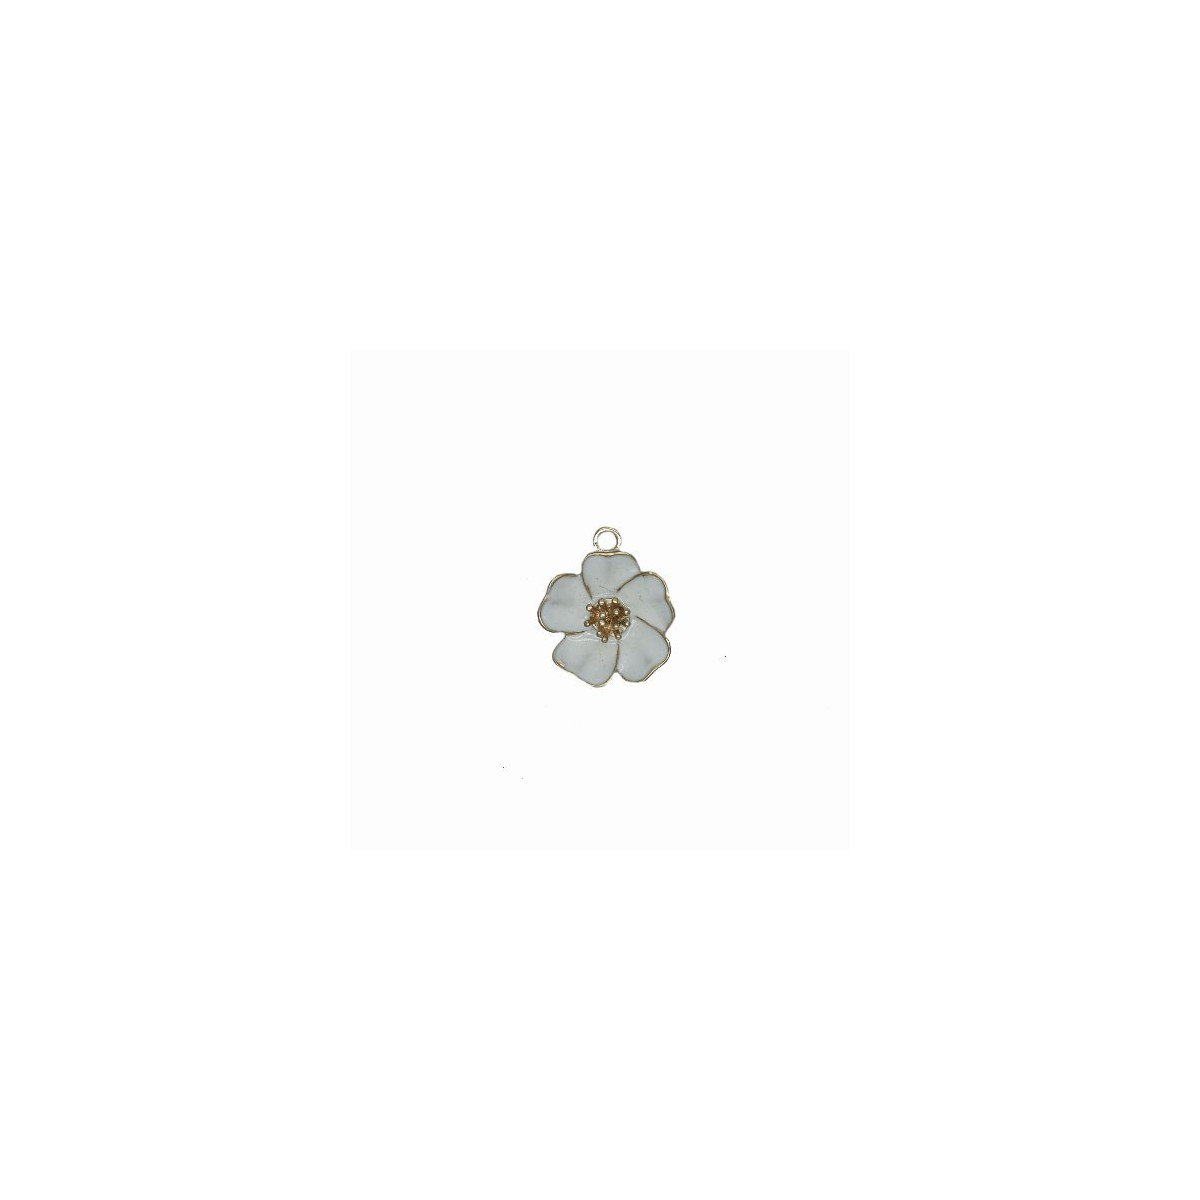 Charms Fiore Bianco 25 mm - 1 pezzi